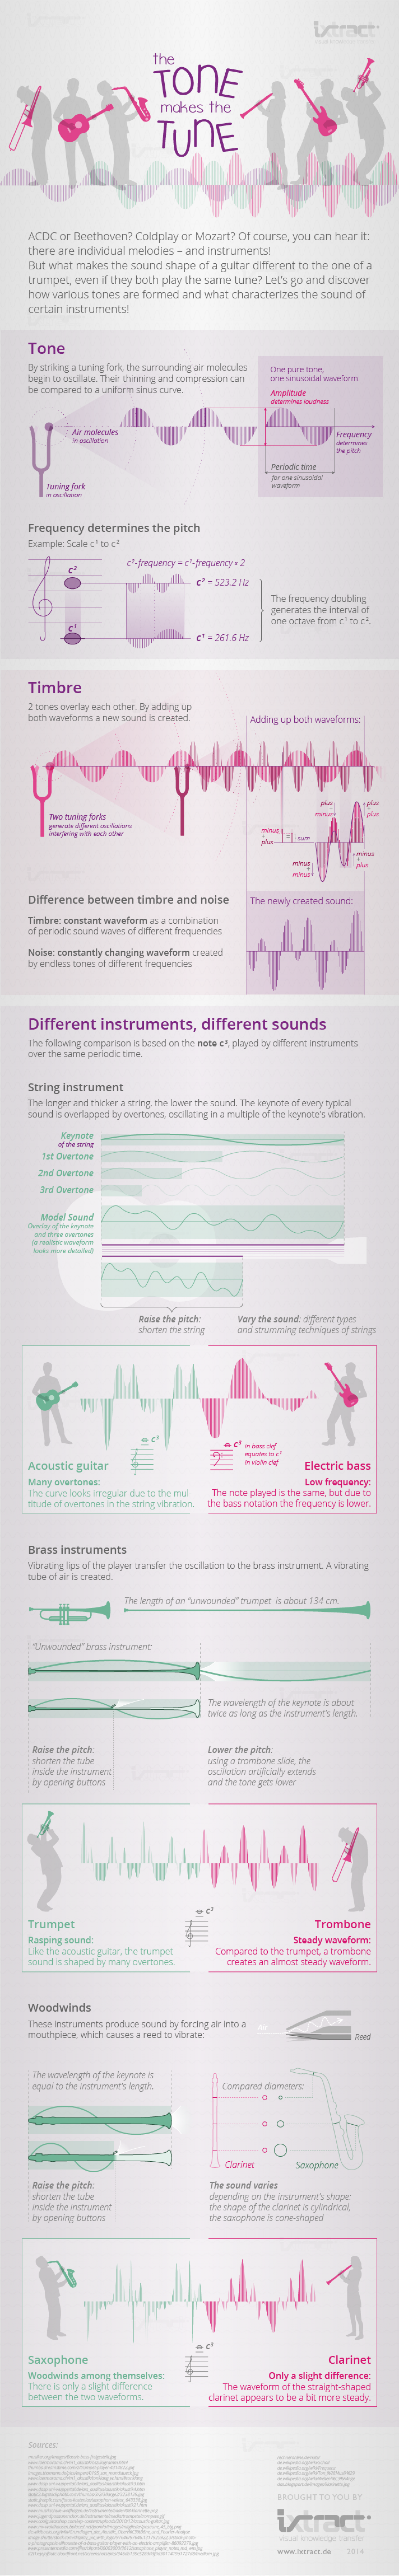 ixtract | The tone makes the tune Infographic